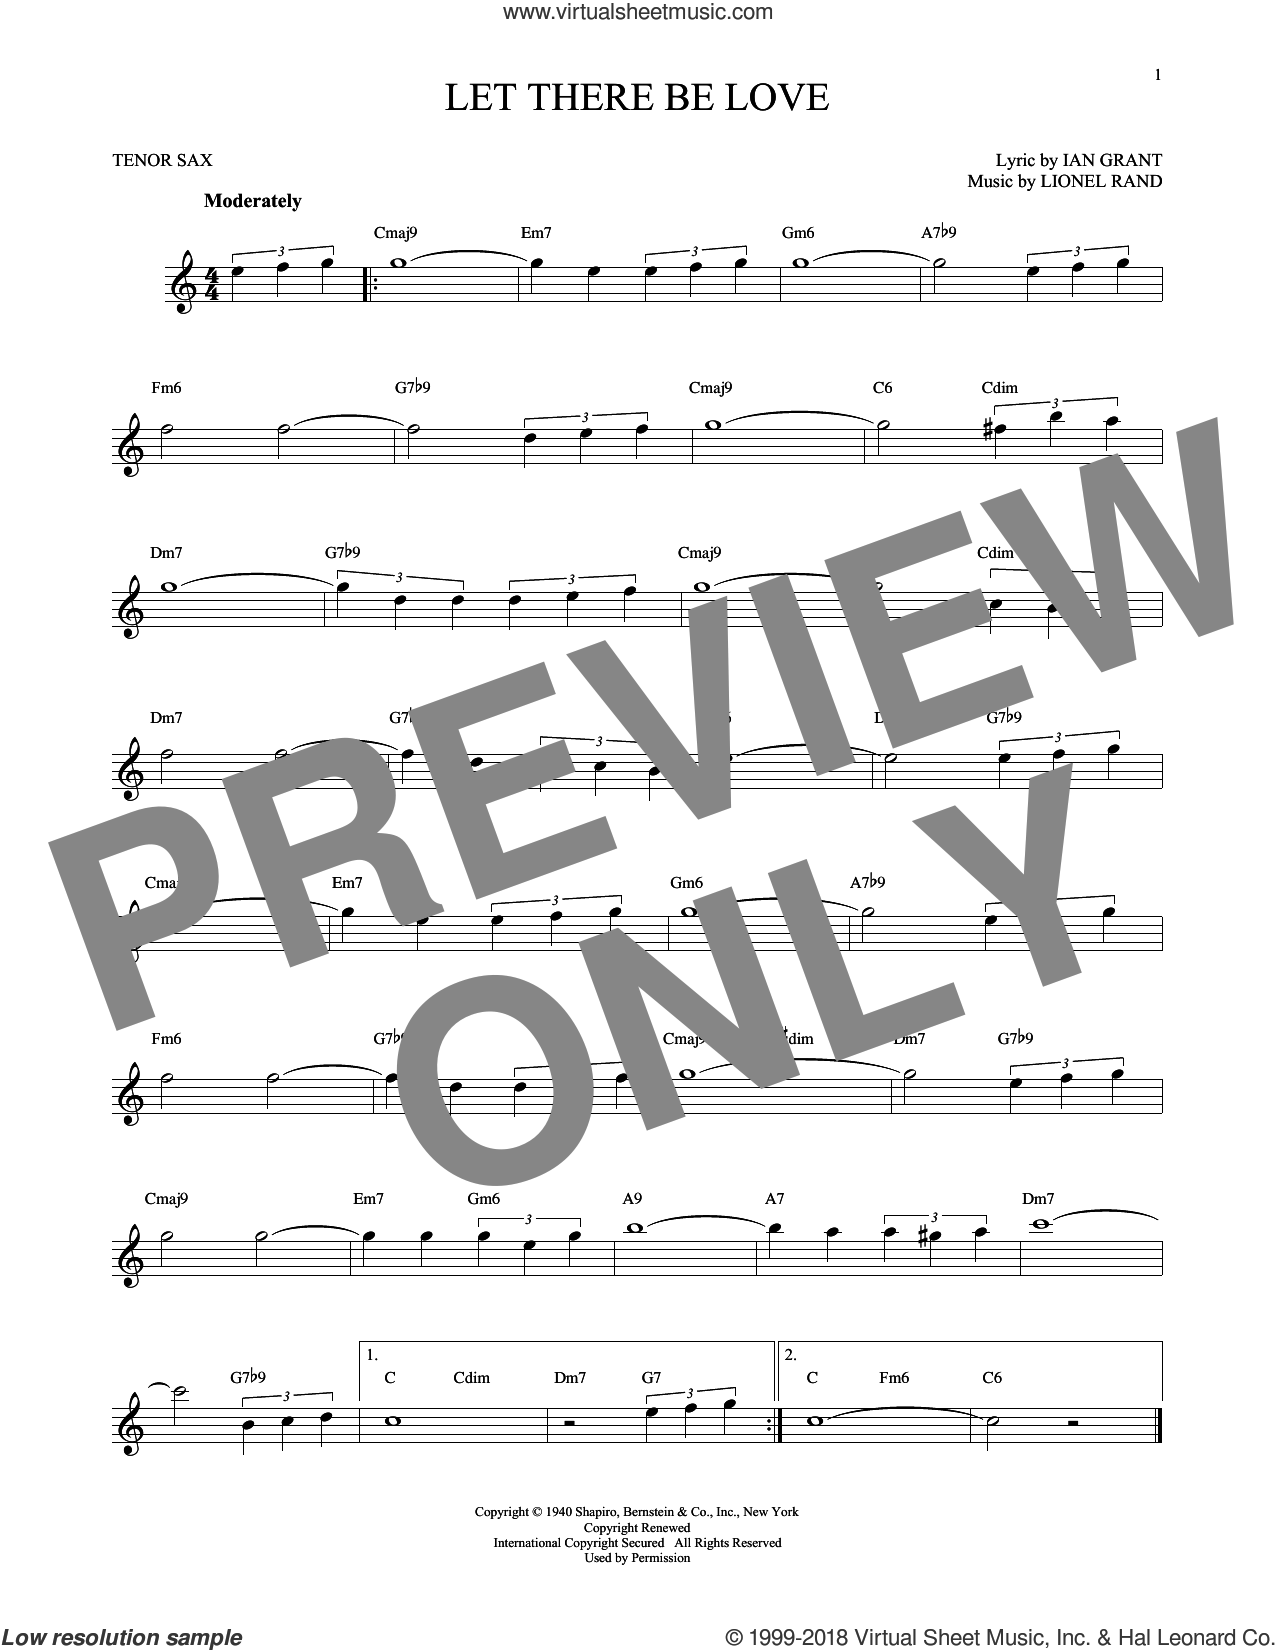 Let There Be Love sheet music for tenor saxophone solo by Ian Grant. Score Image Preview.